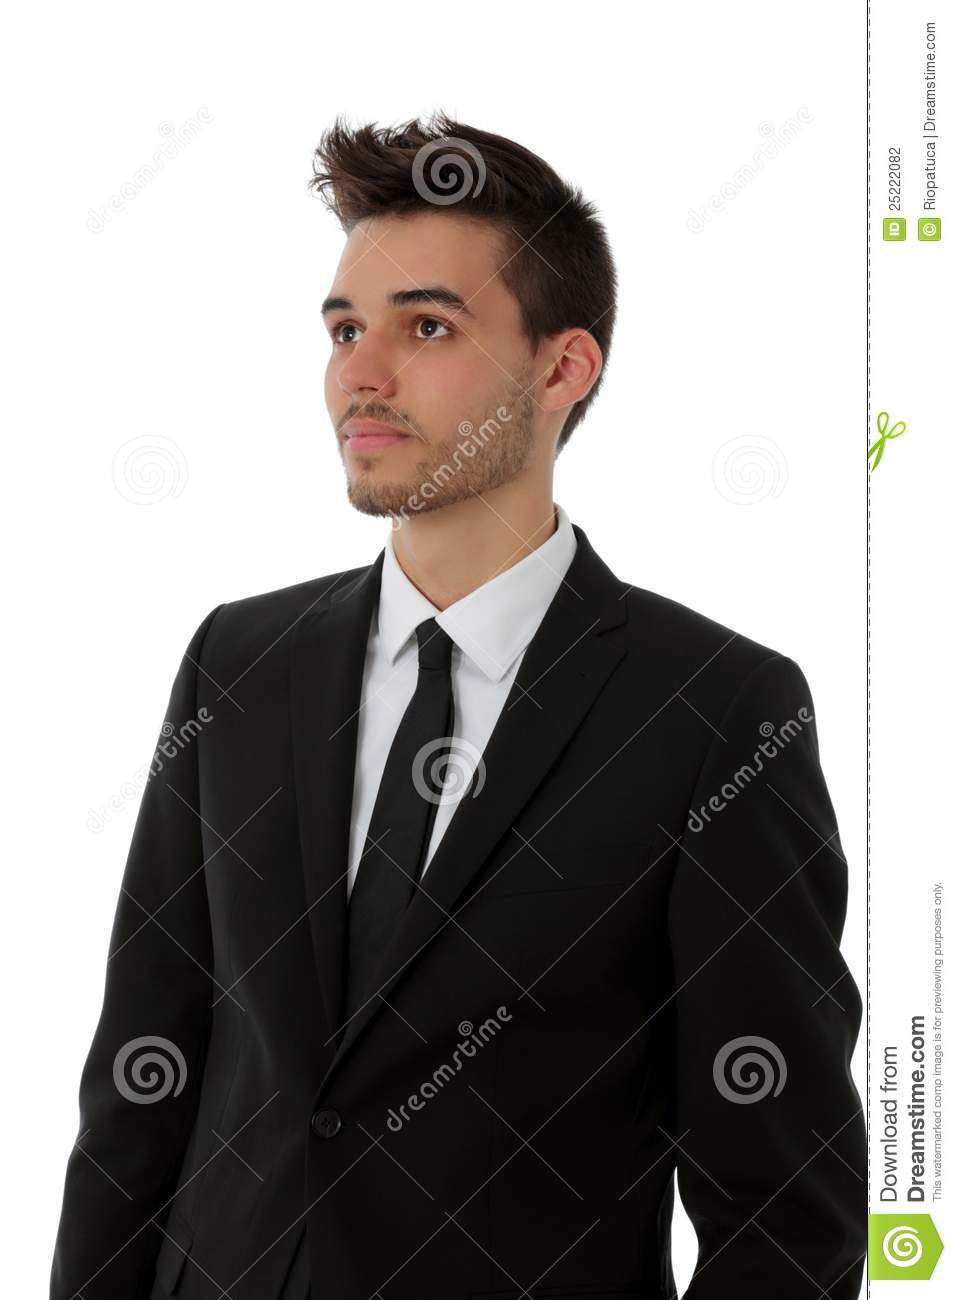 Young Man In Black Suit Stock Photography - Image: 25222082